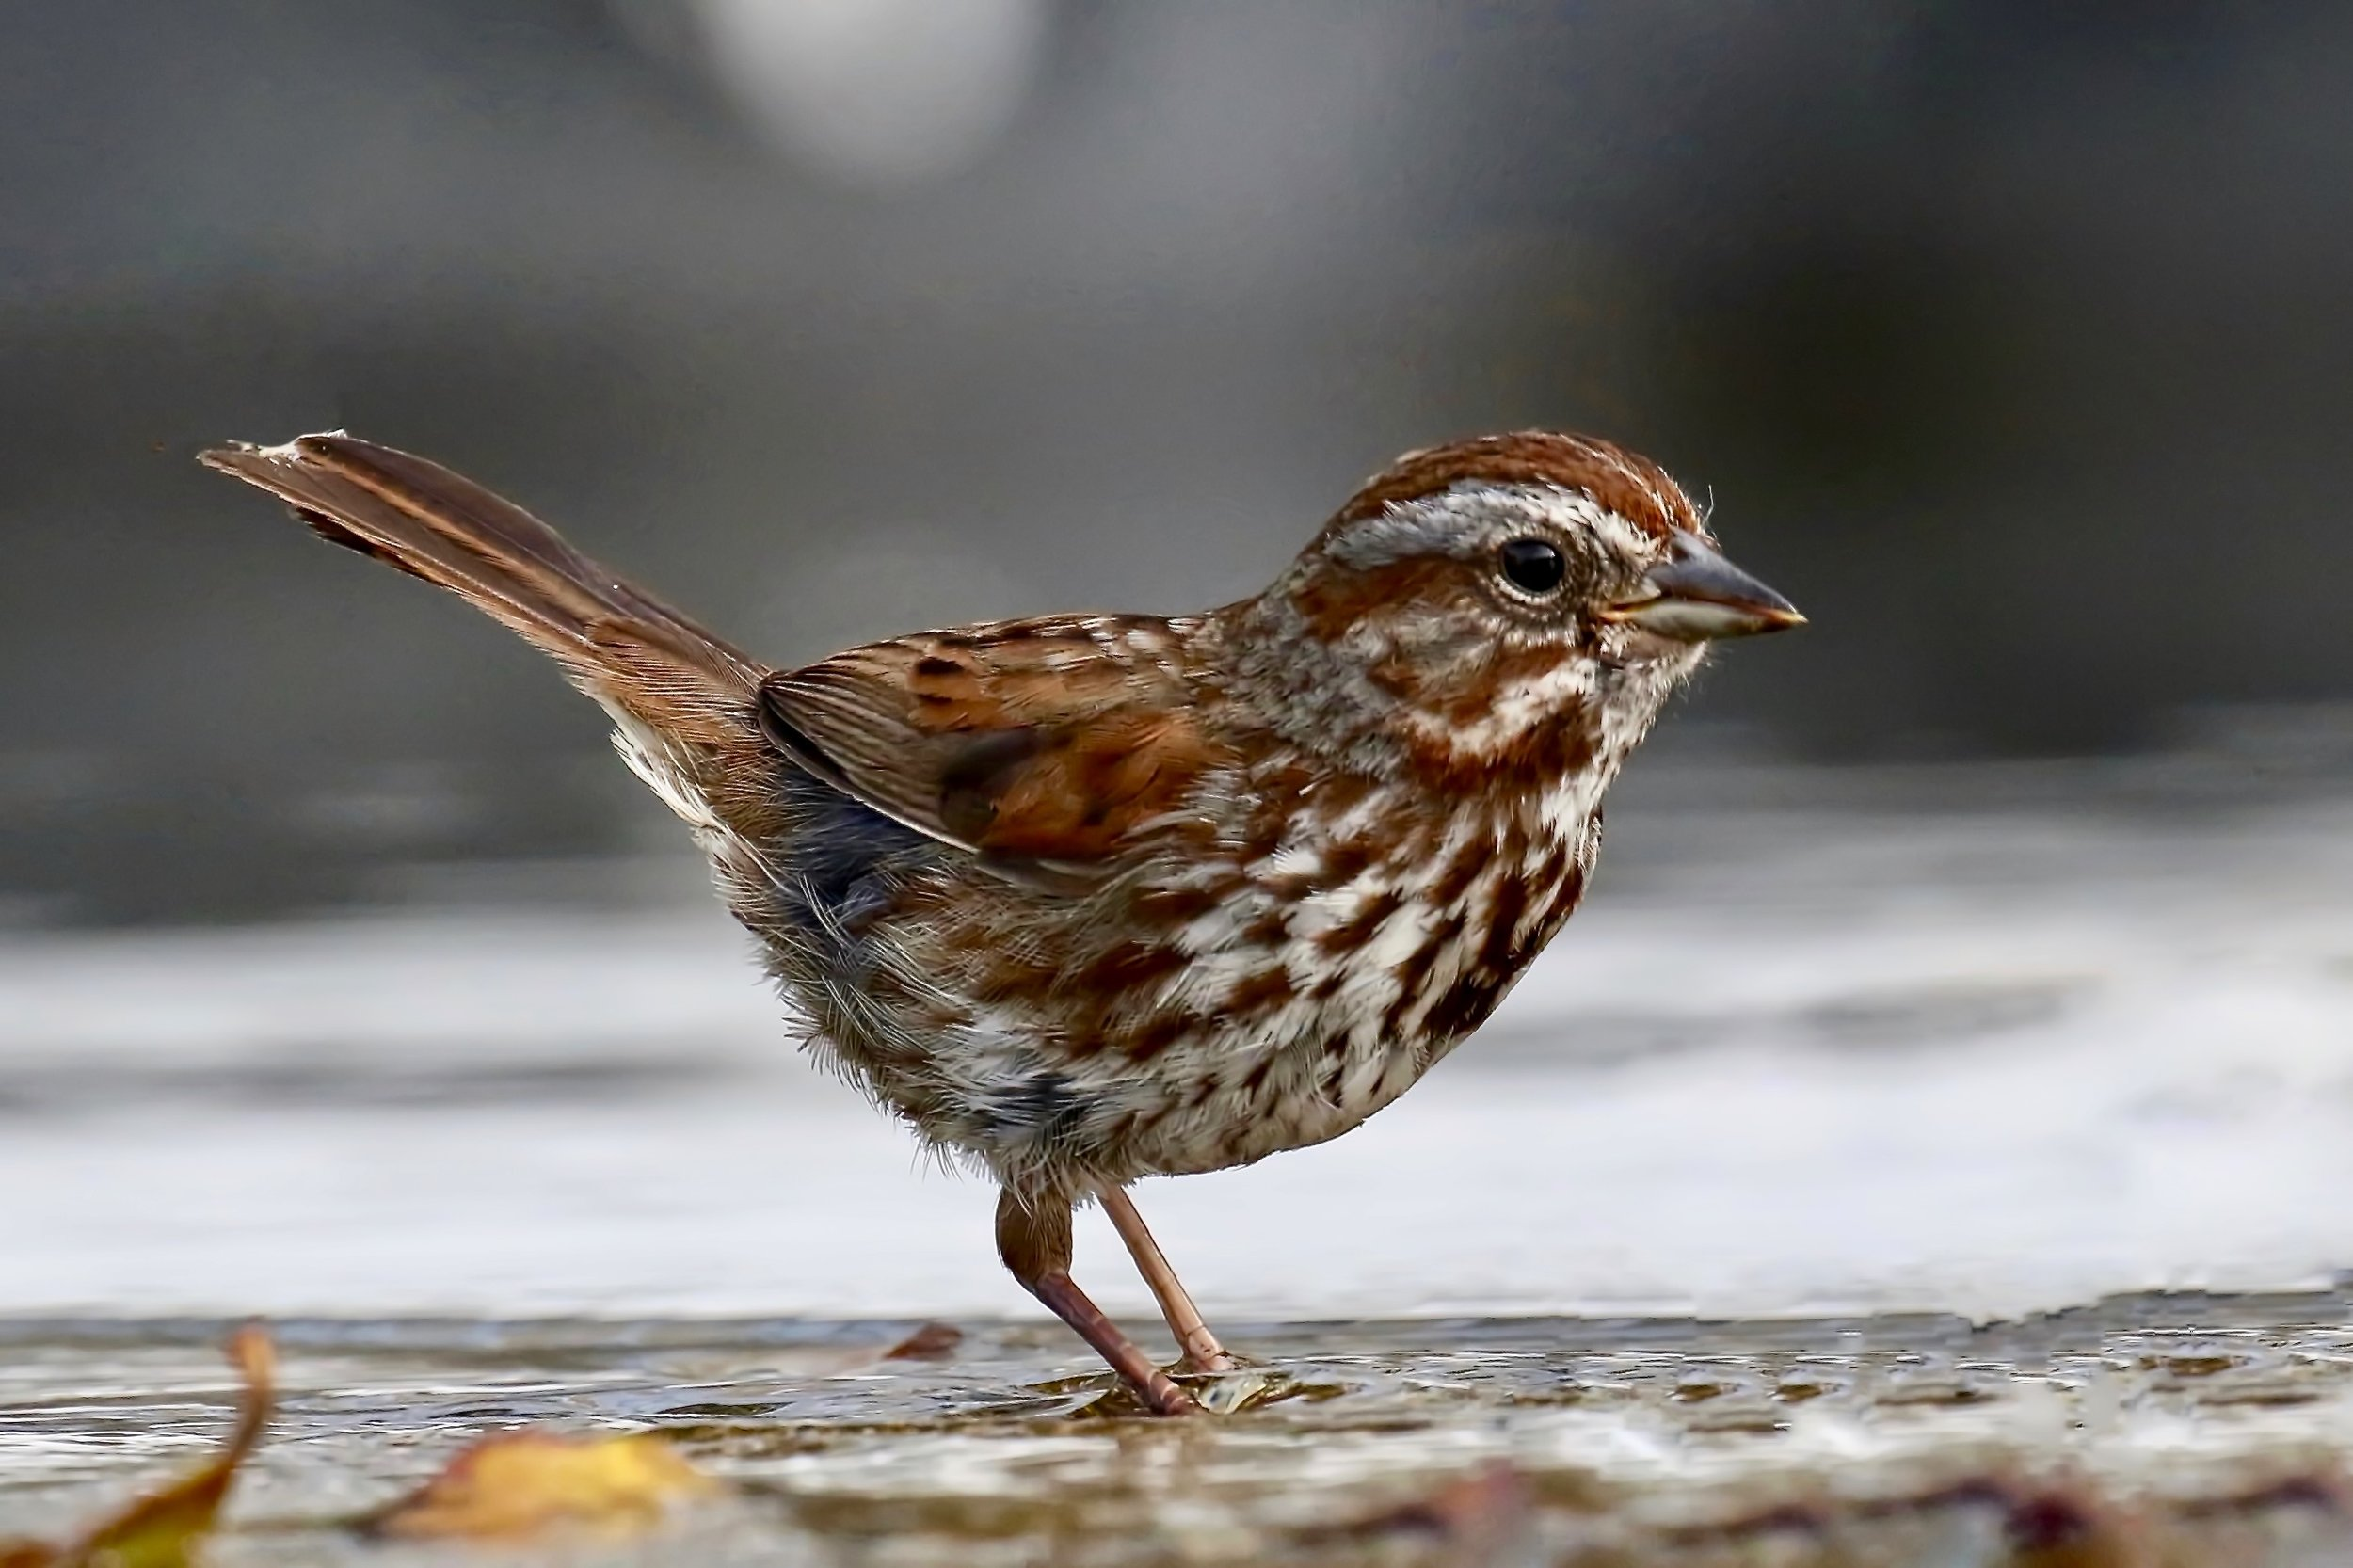 Song sparrow, New Westminster B.C.